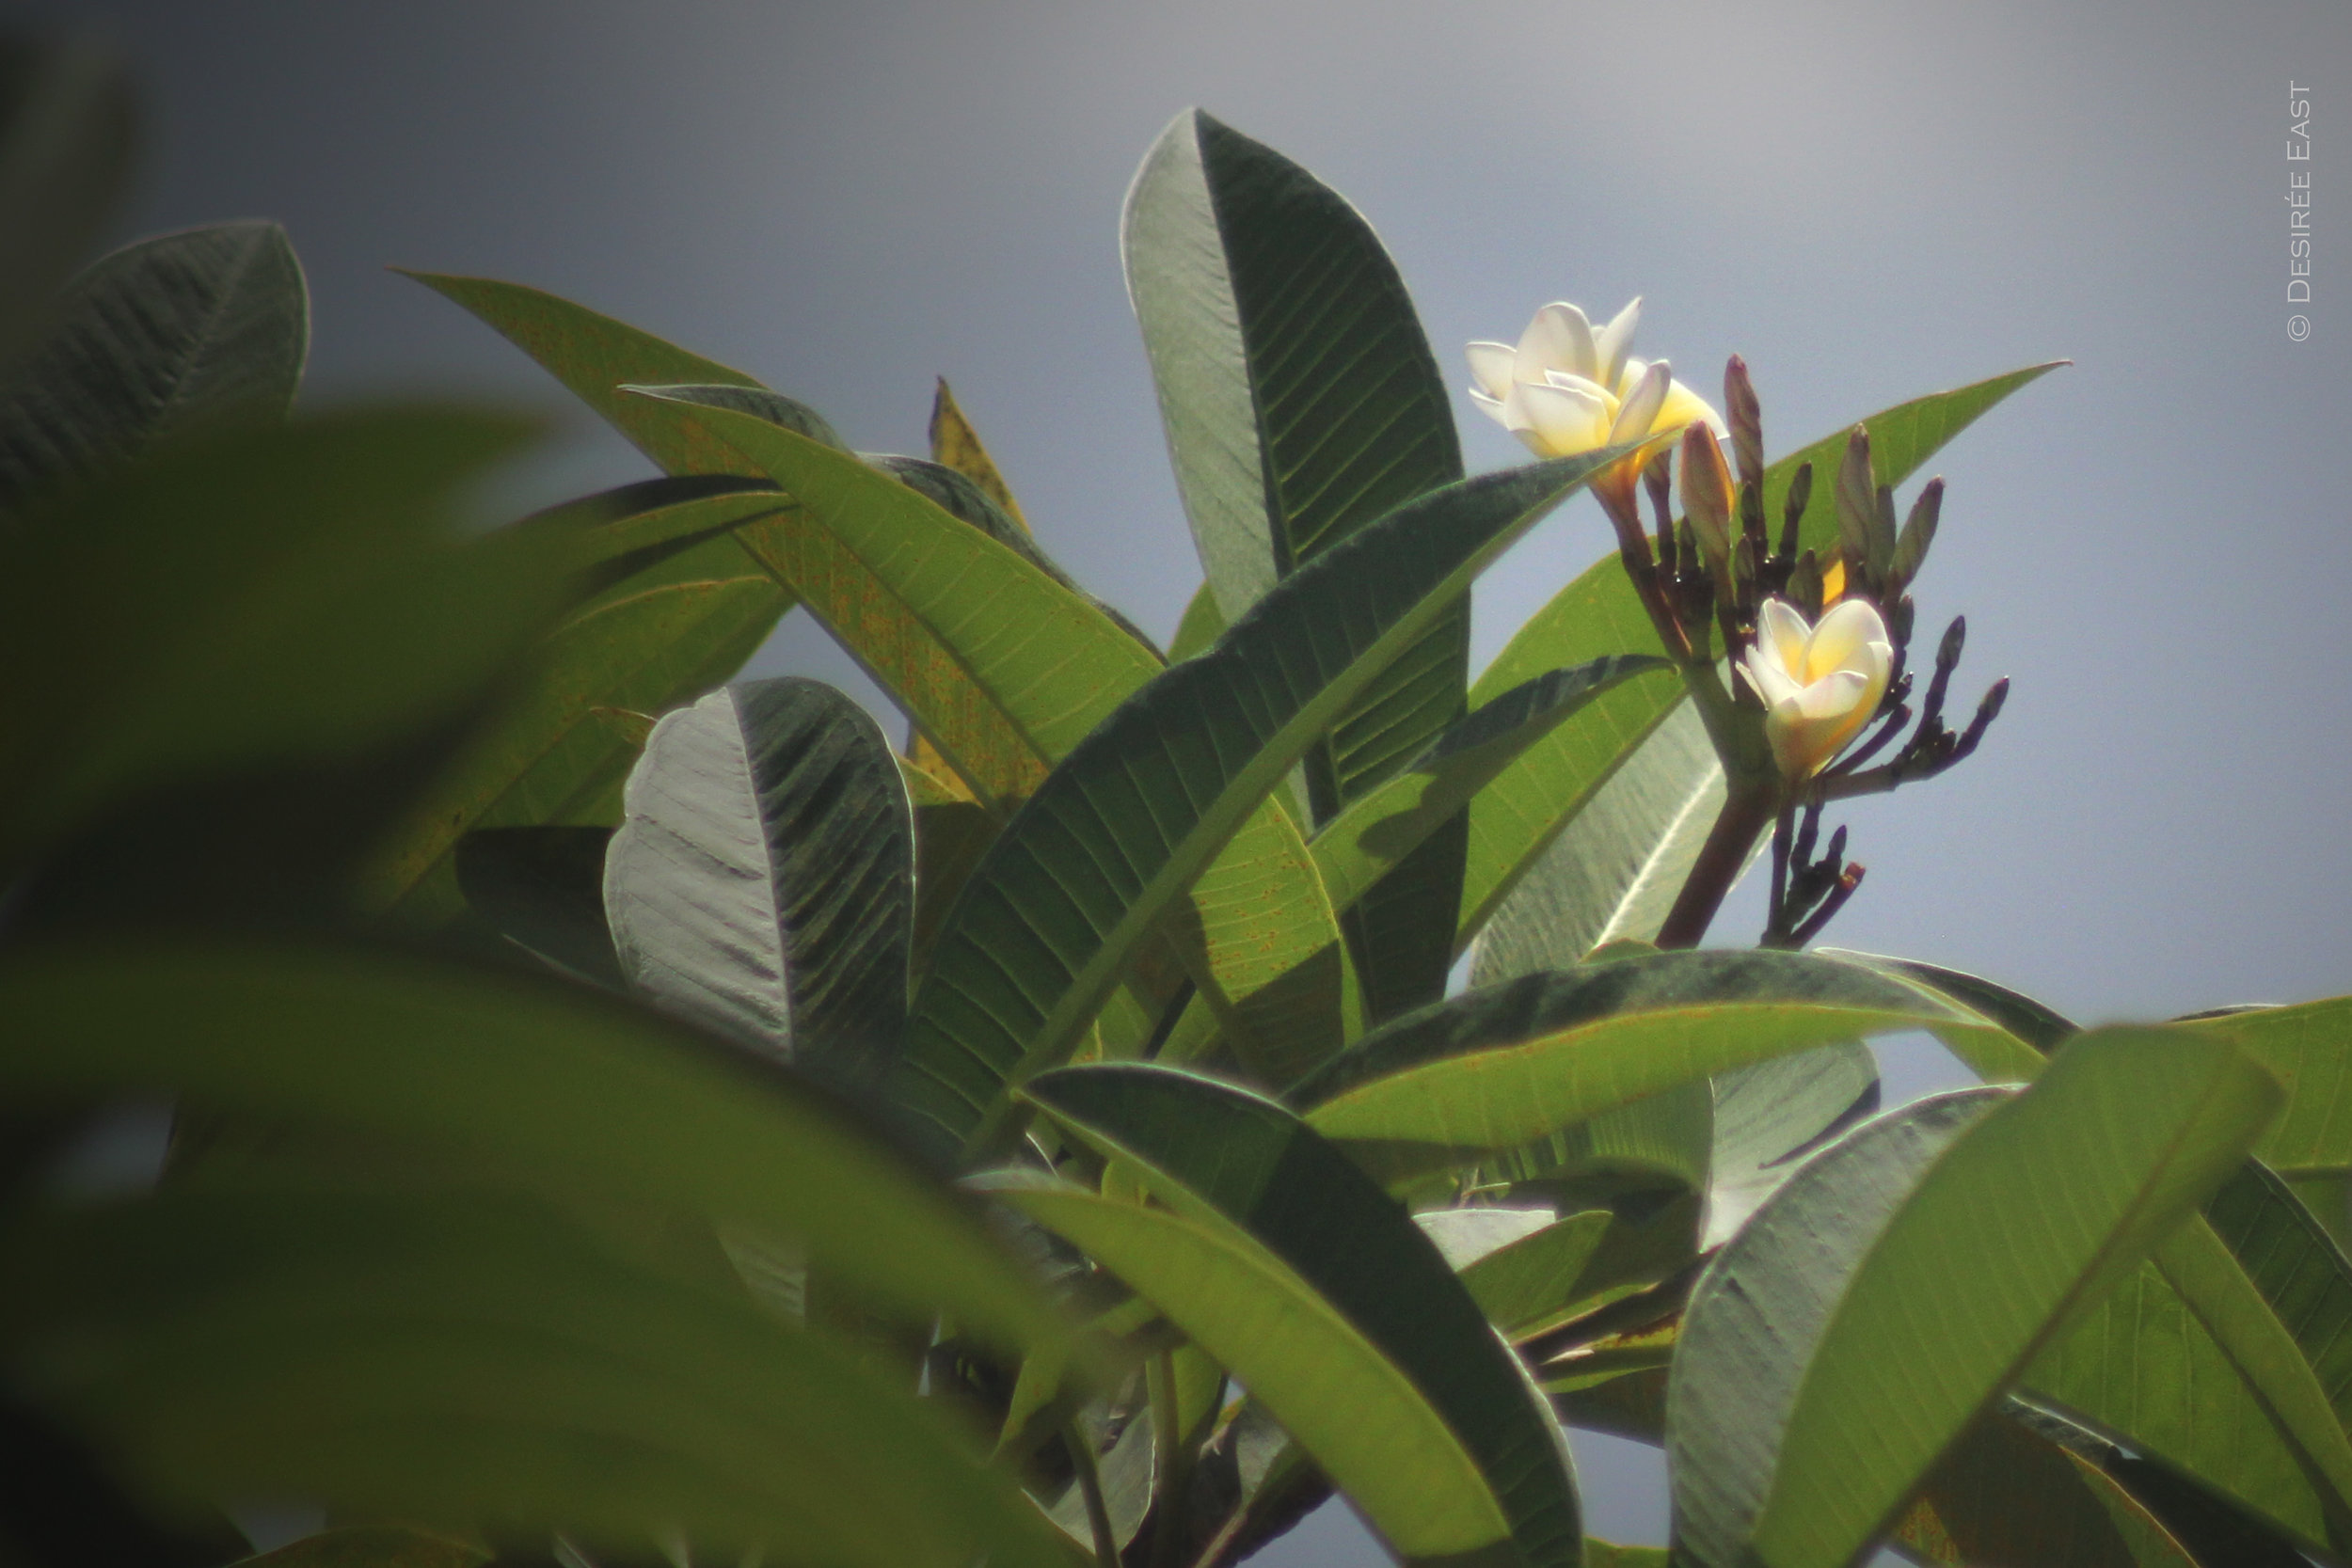 plumeria blooming everywhere. bali, indonesia. photo by desiree east